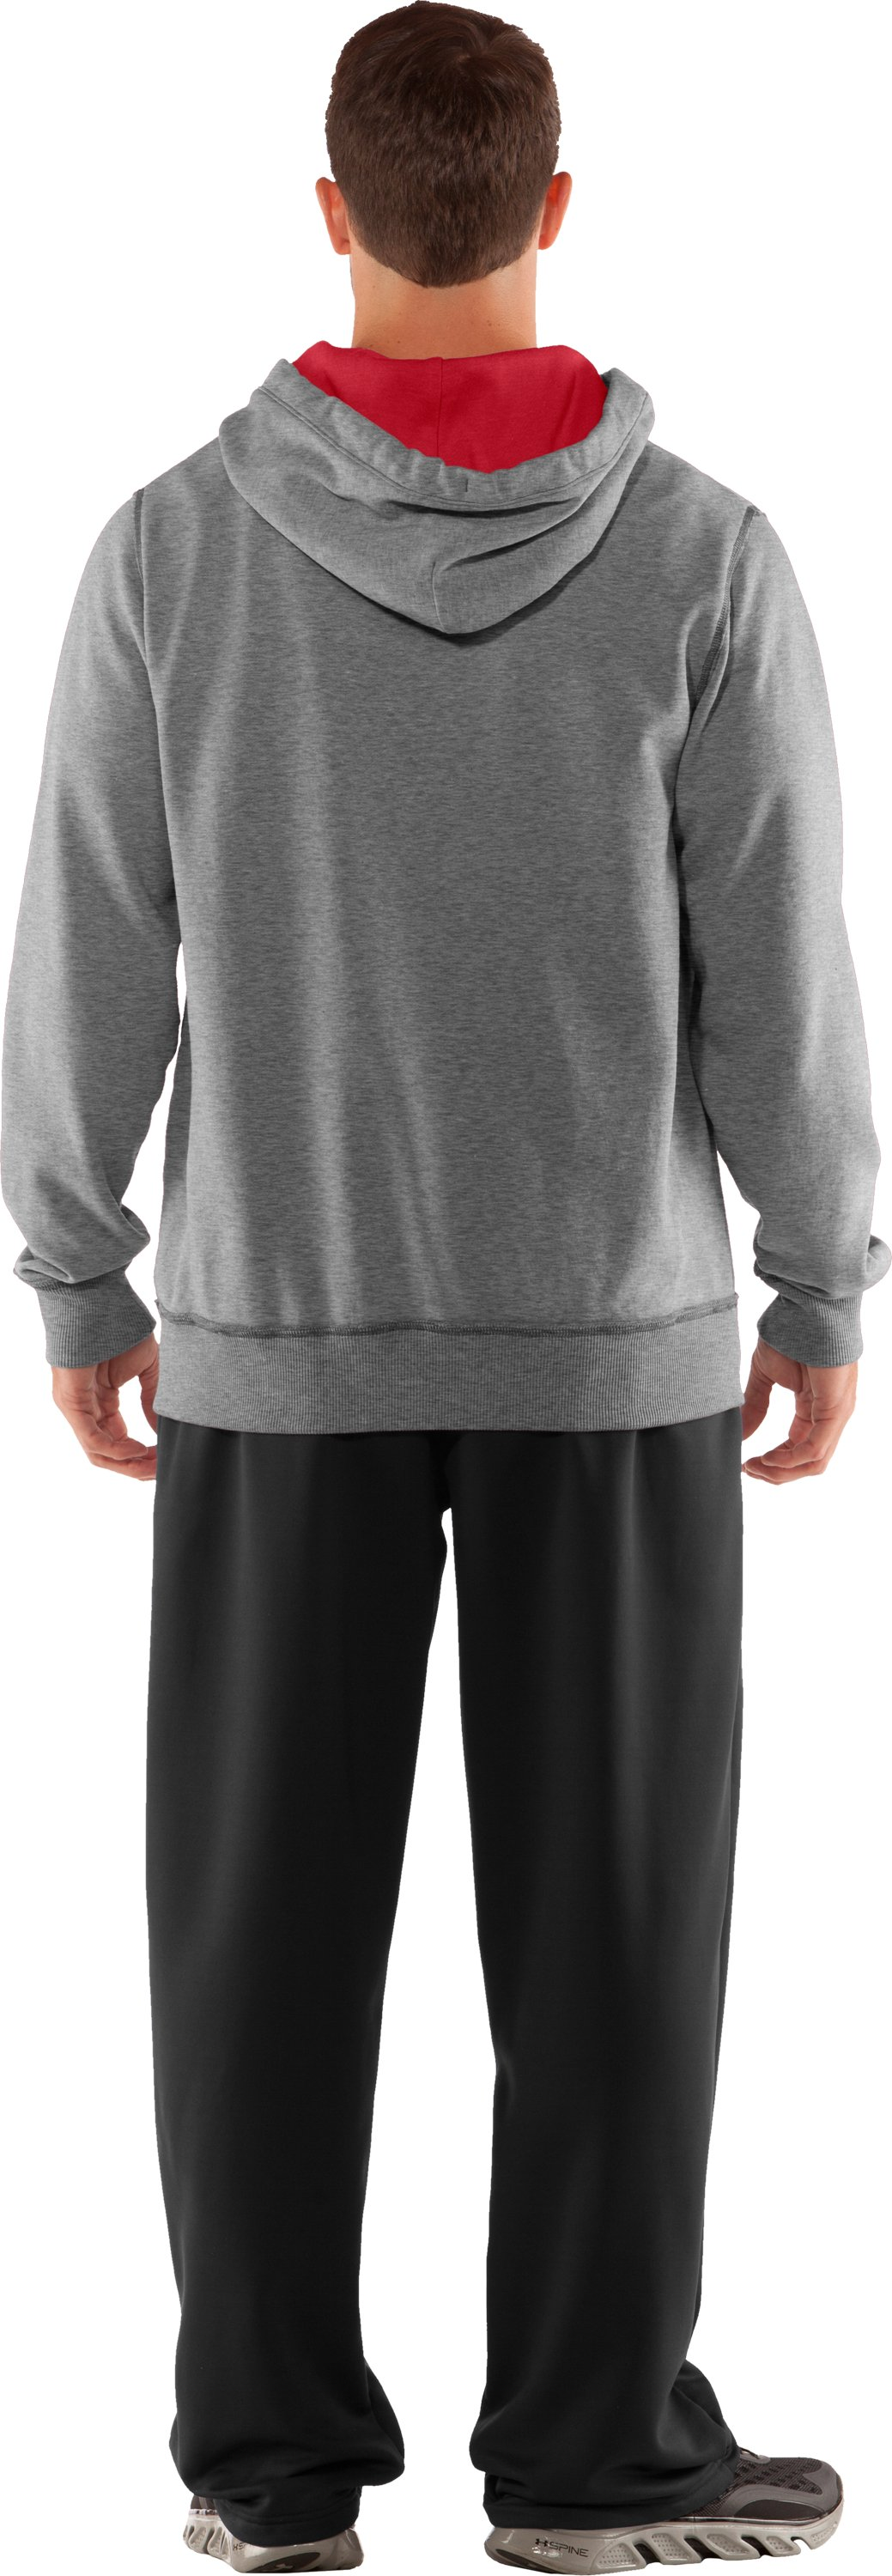 Men's Texas Tech Under Armour® Legacy Hoodie, True Gray Heather, Back